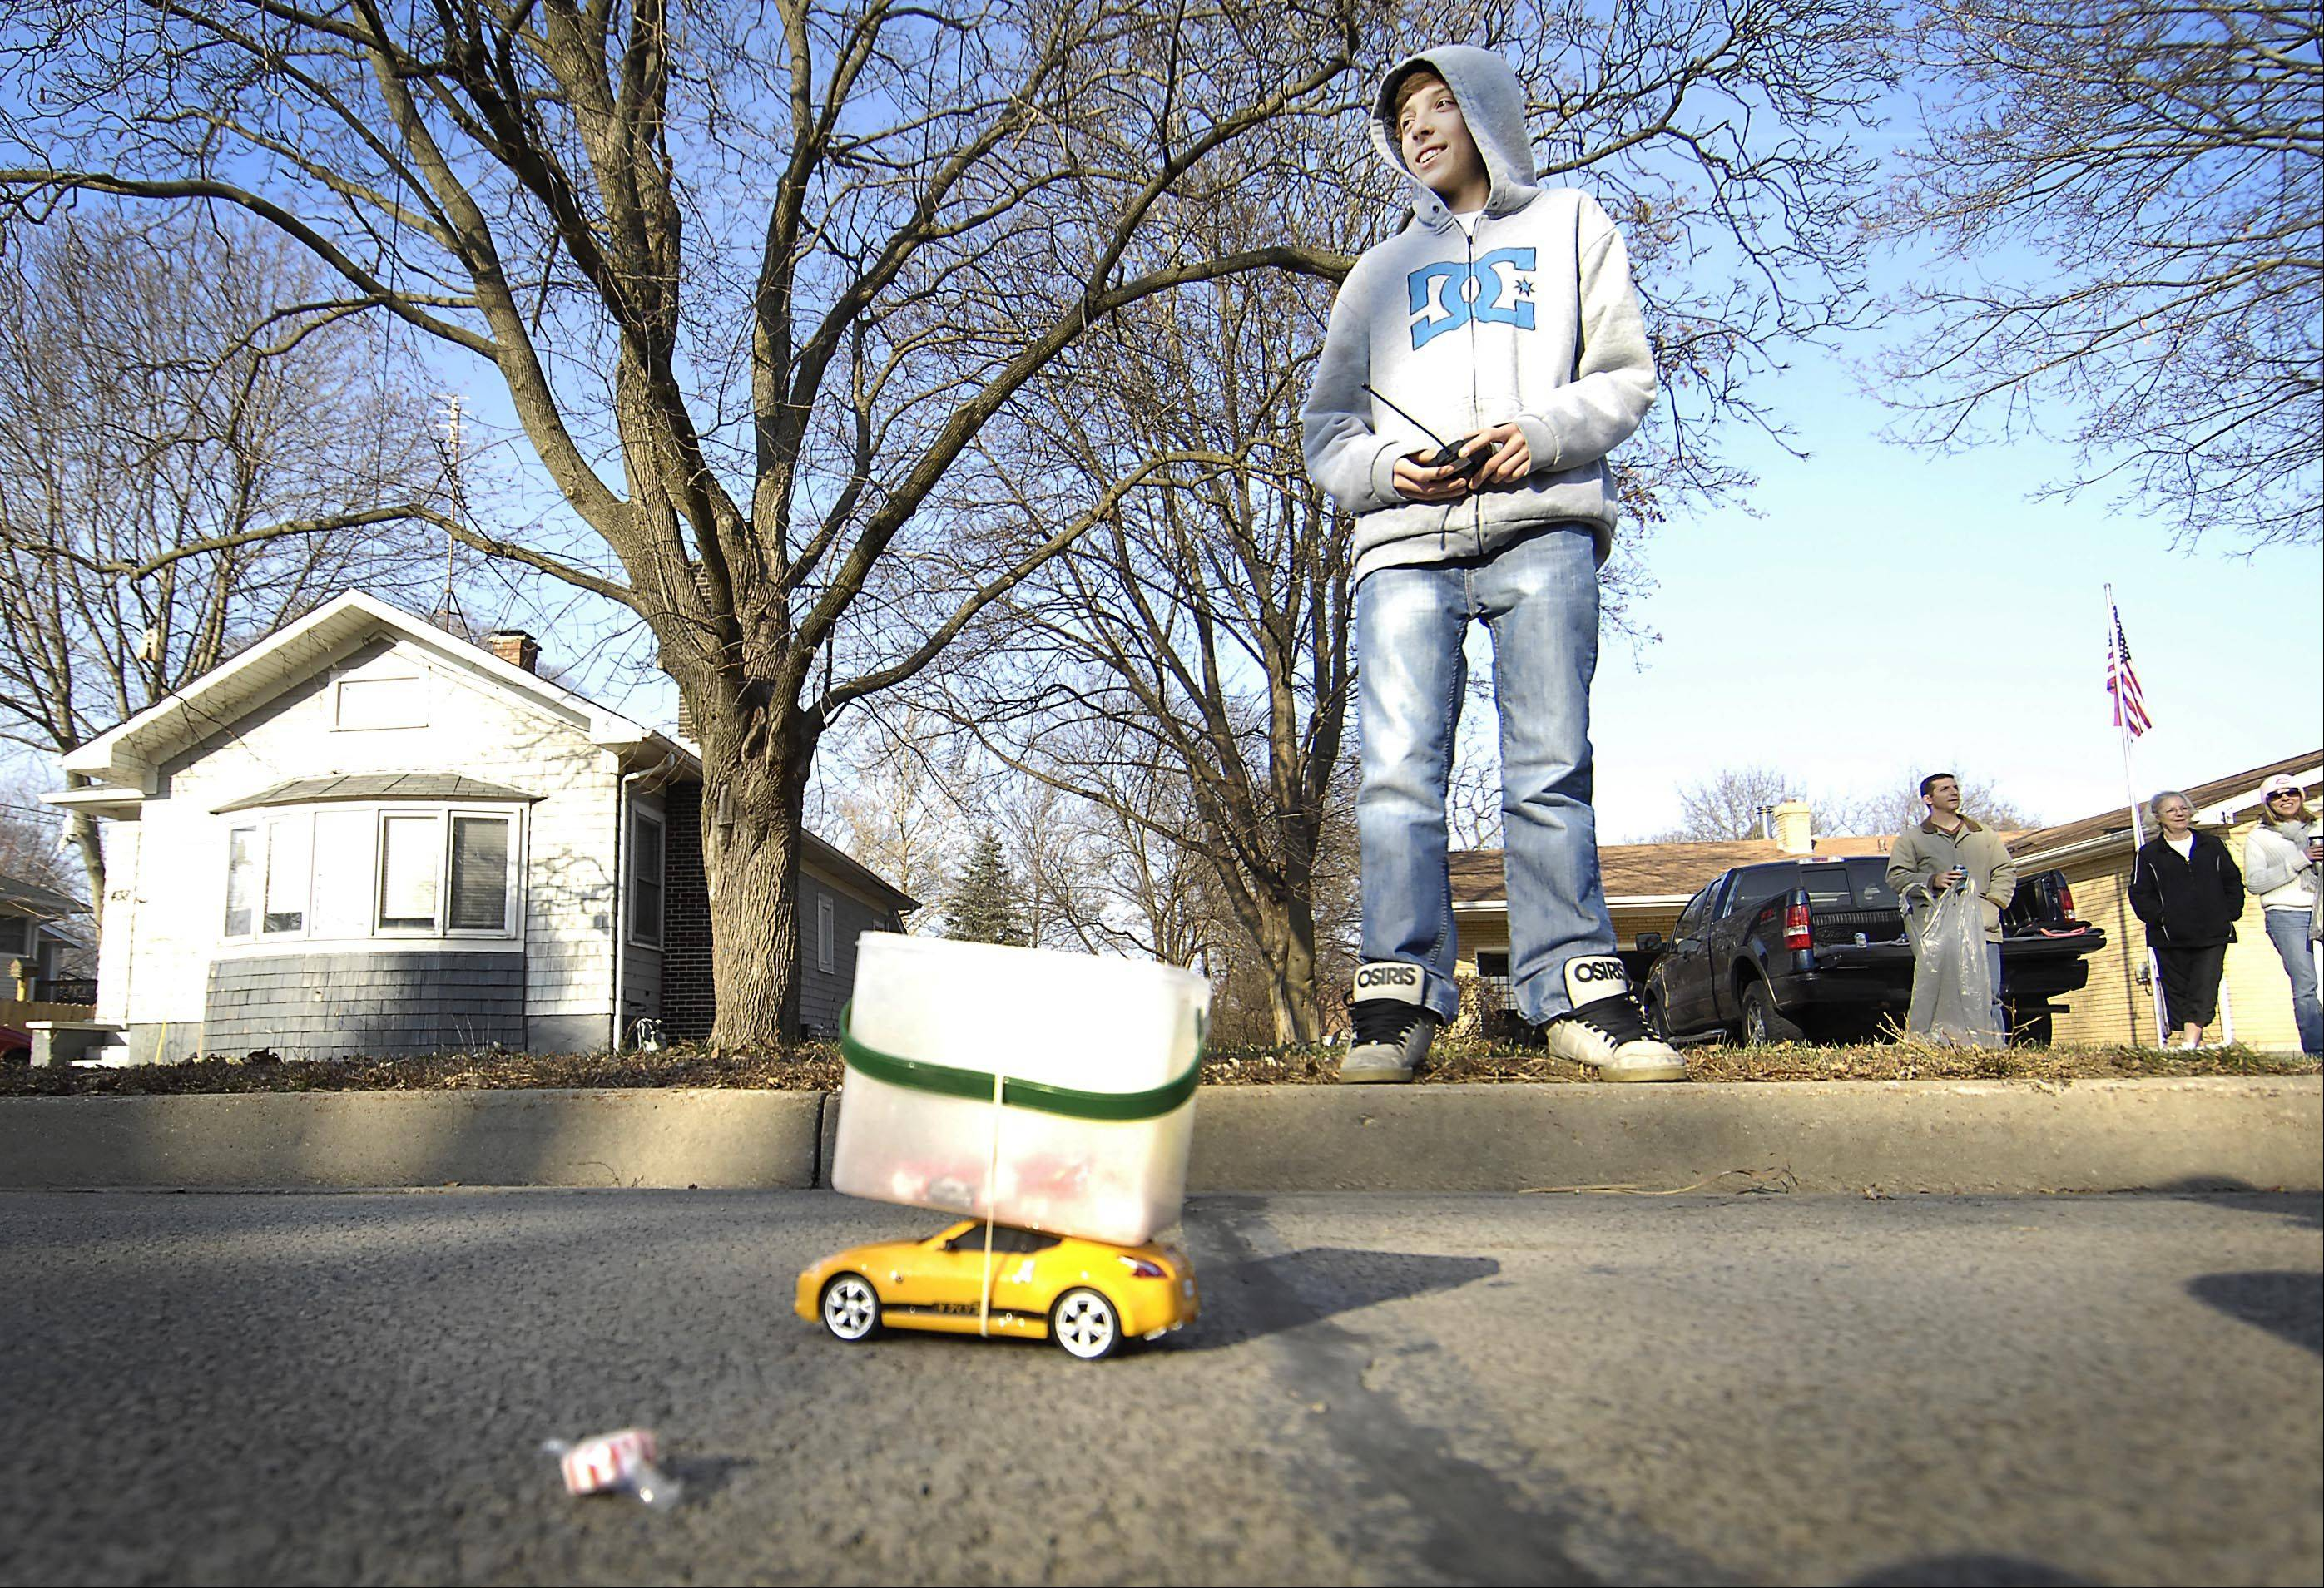 Jacob Franklin, 16, stands on the curb in front of his grandmother�s house Sunday at the Merry Cary Holiday Parade on Main Street in Cary. He used a remote control car with an attached box to collect candy. �It gets a lot of attention,� he said.